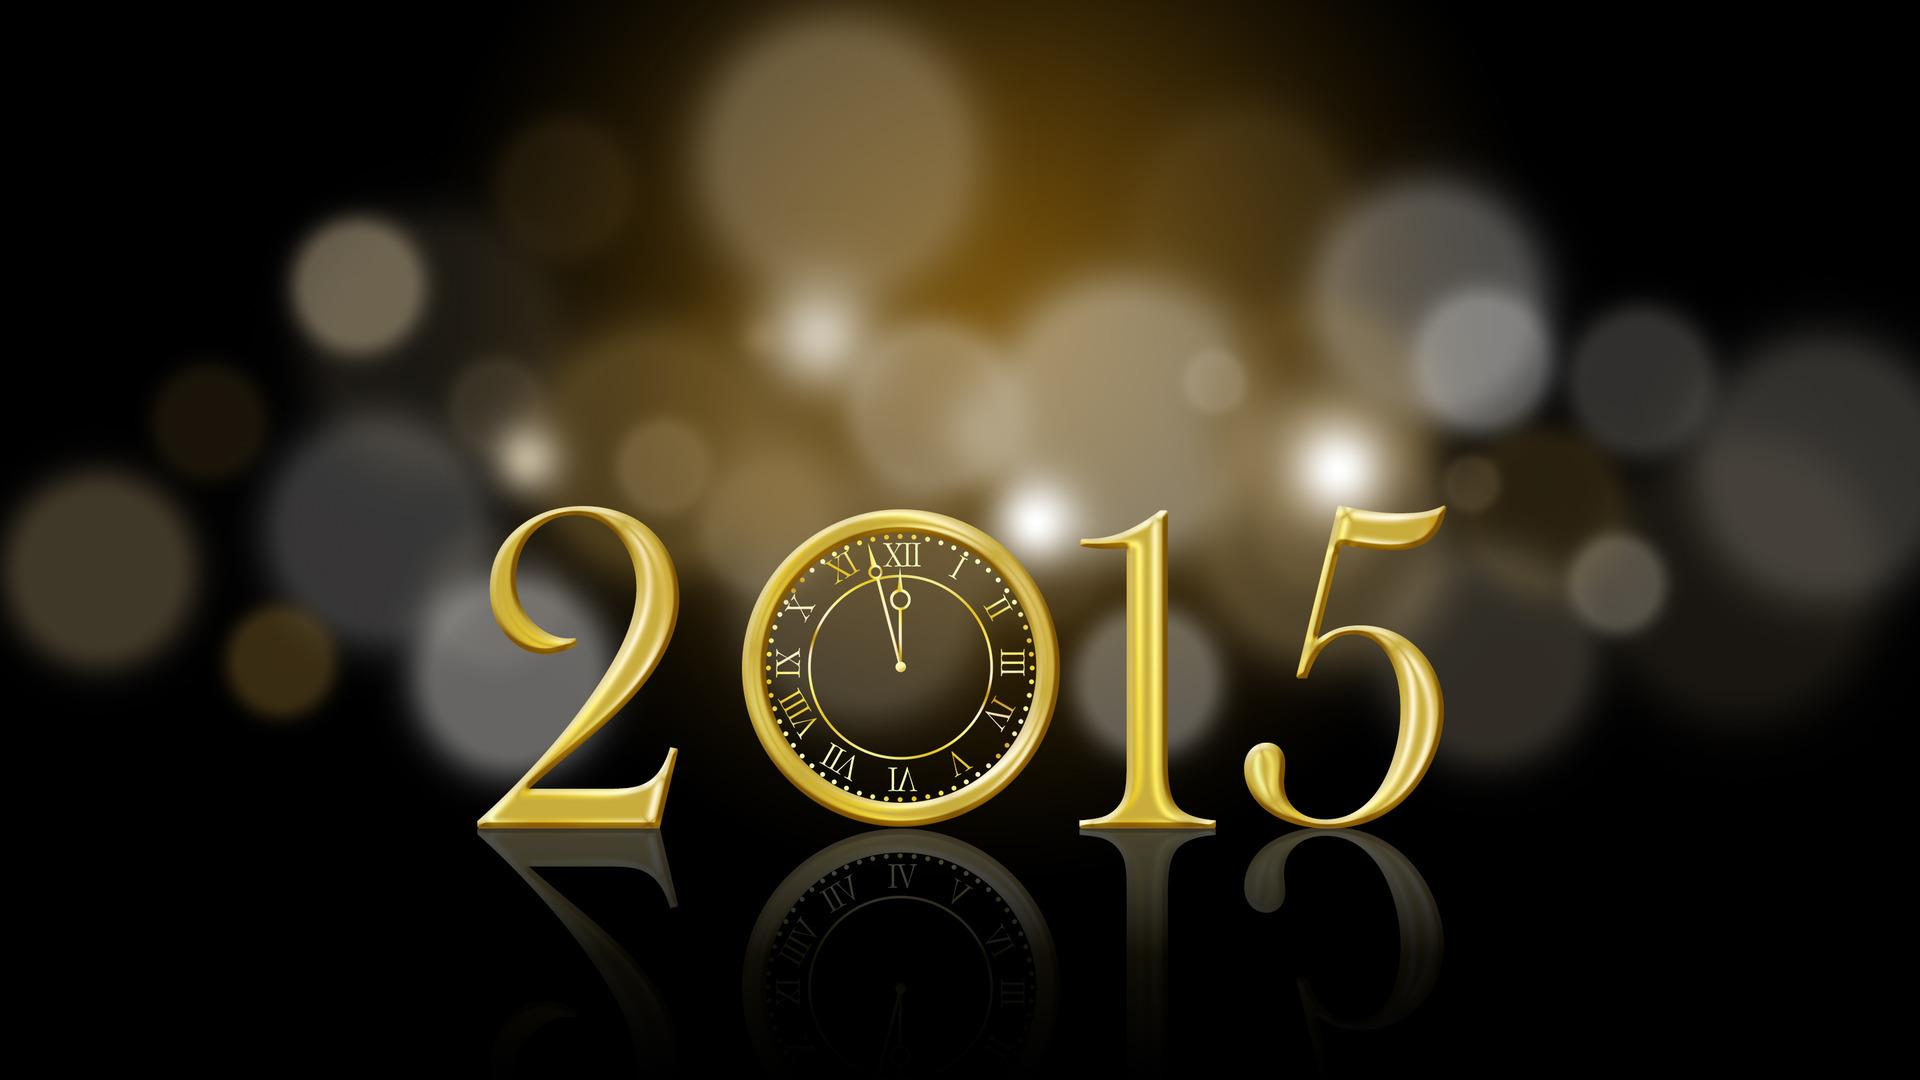 happy new year 2015 hd wallpaper android stock wallpapers